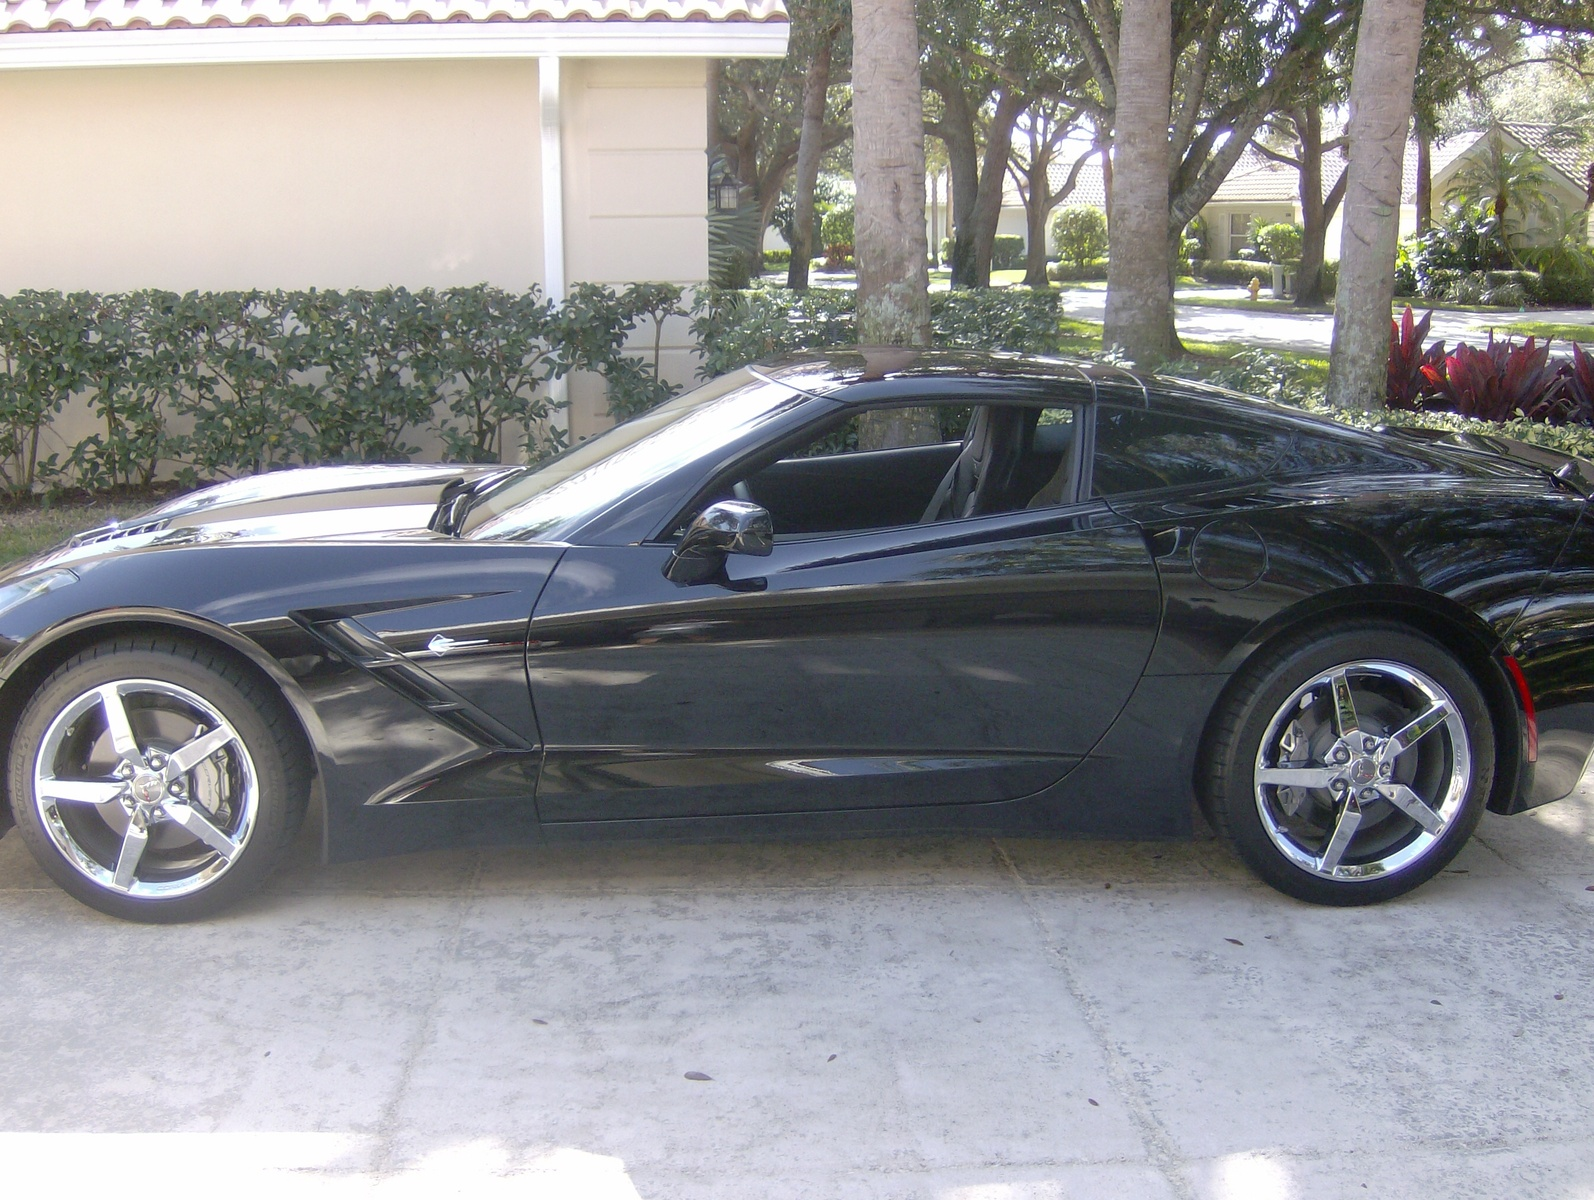 Picture of 2014 Chevrolet Corvette Stingray 2LT, exterior